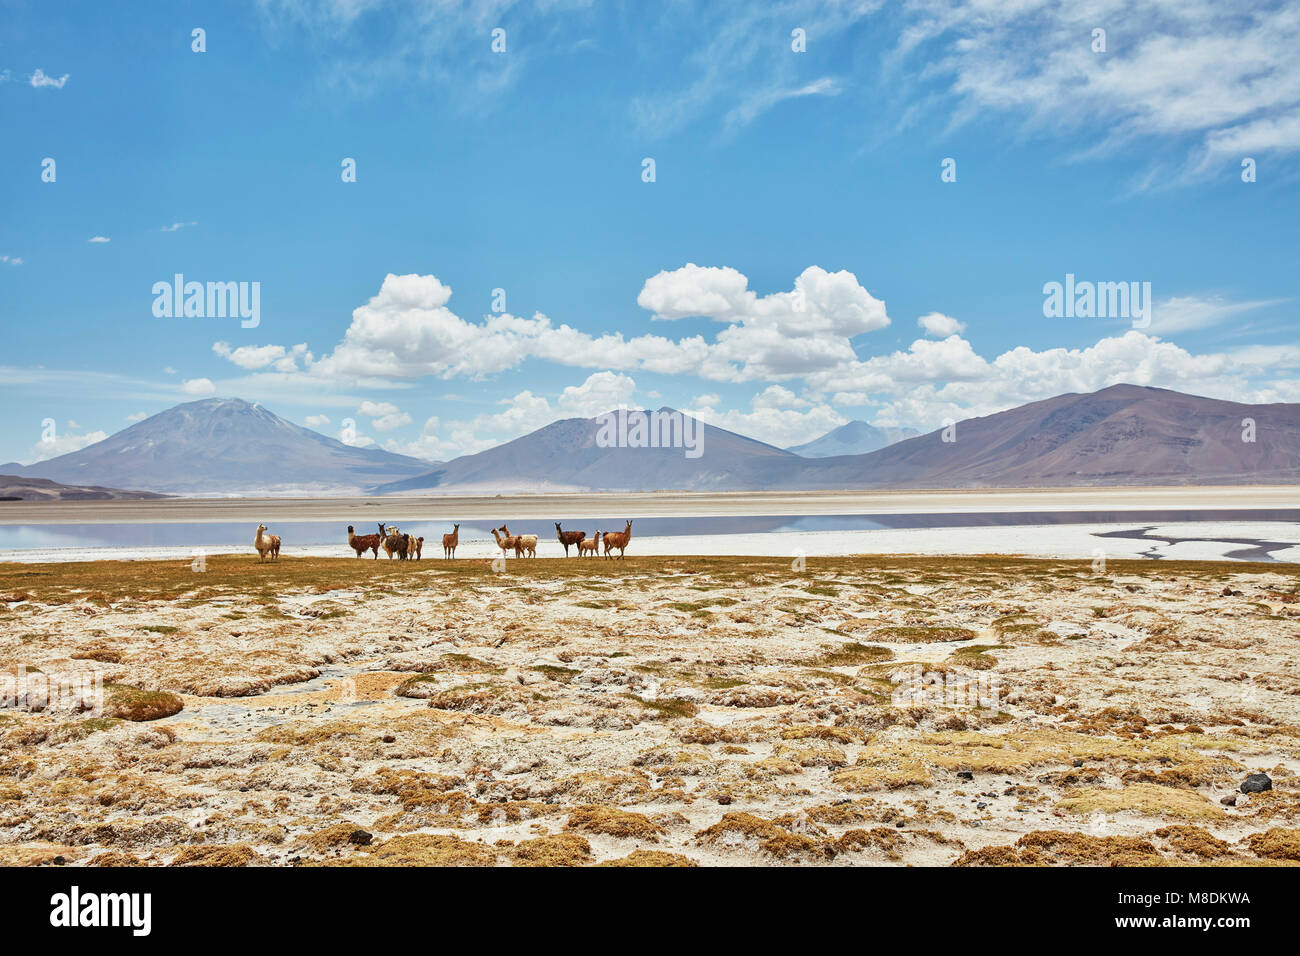 Herd of llamas on landscape, Salar de Chiguana, Chiguana, Potosi, Bolivia, South America - Stock Image